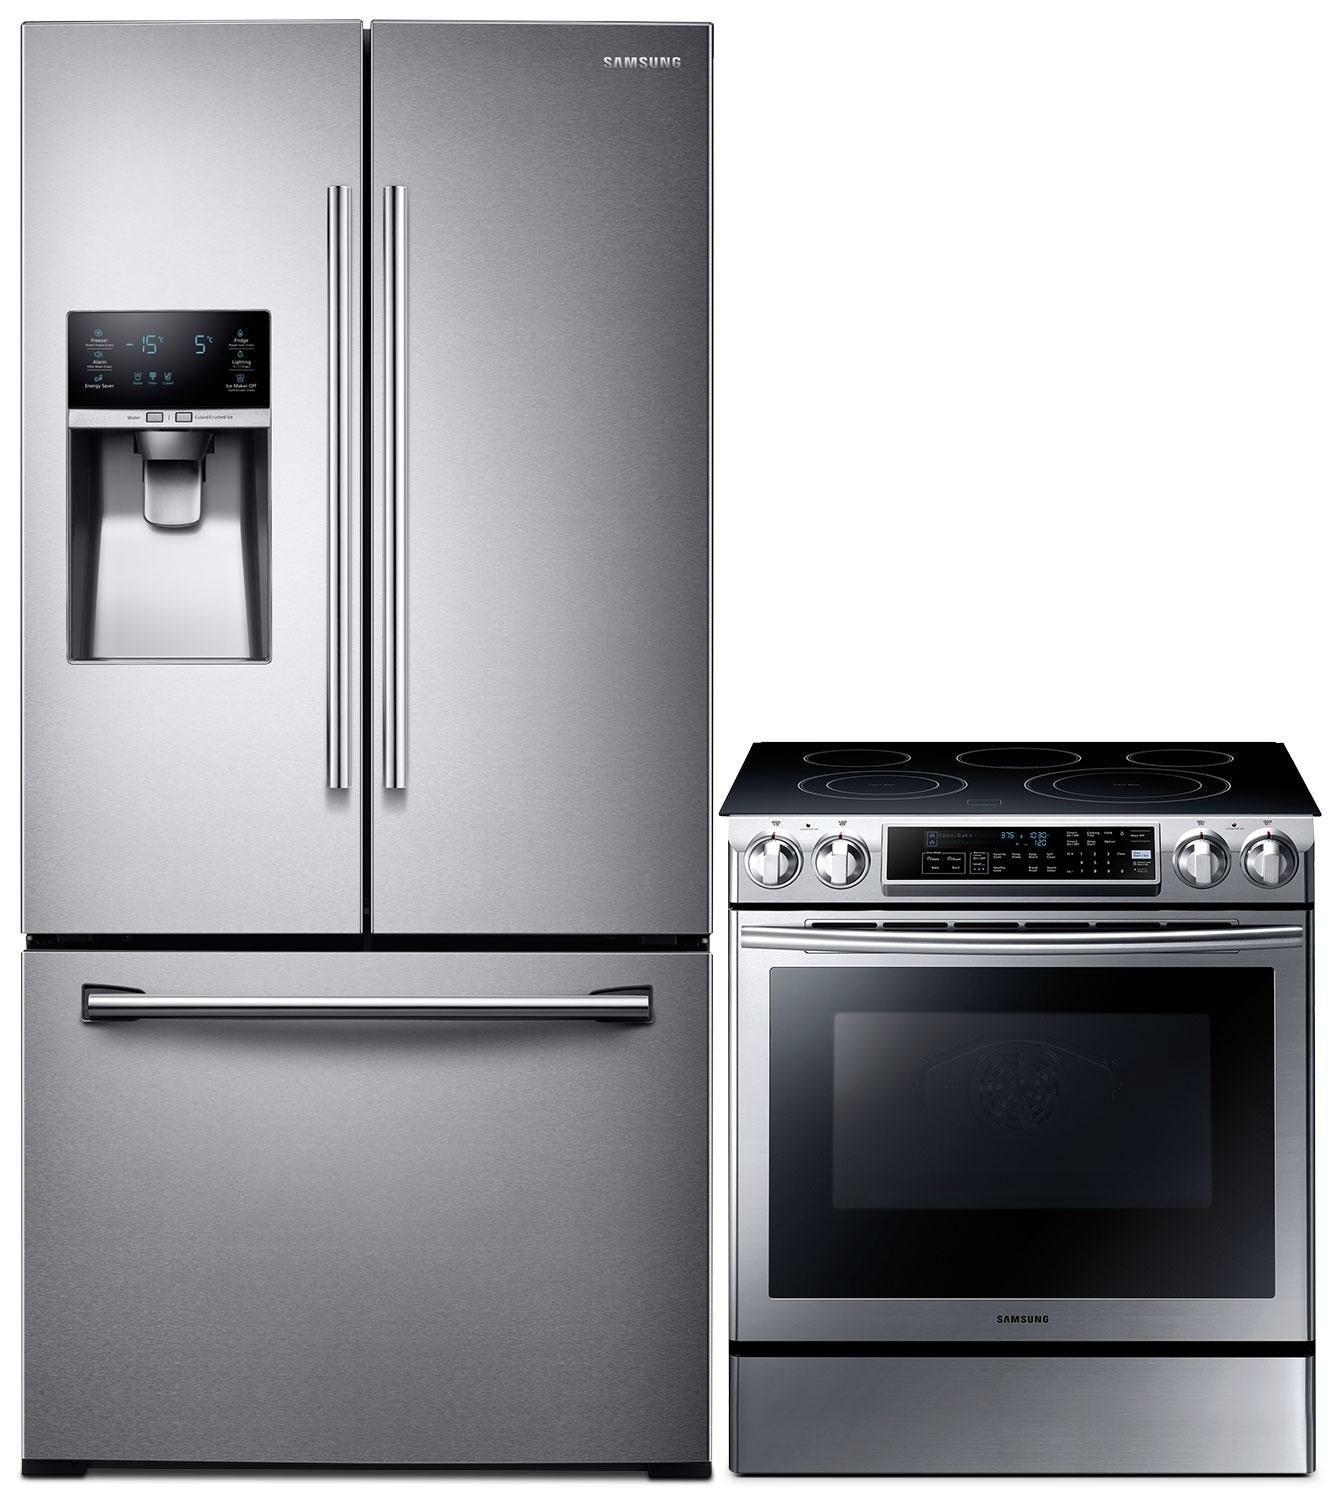 Refrigerators and Freezers - Samsung 25.5 Cu. Ft. Refrigerator and 5.8 Cu Ft. Electric Range